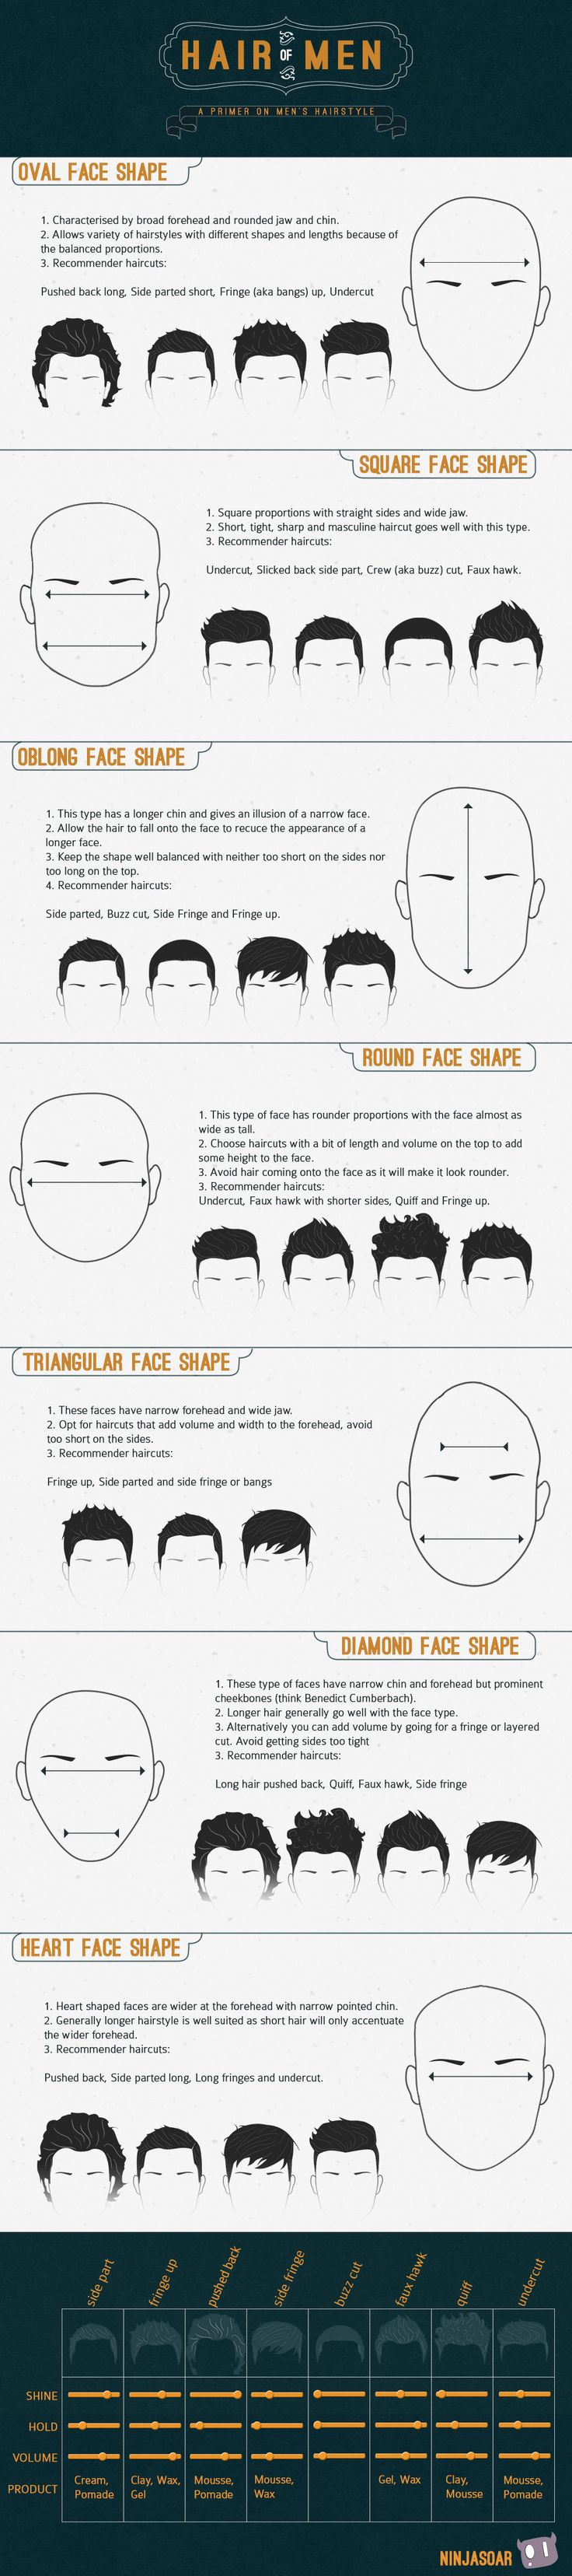 Best mens haircuts melbourne jan donyada jandonyada on pinterest